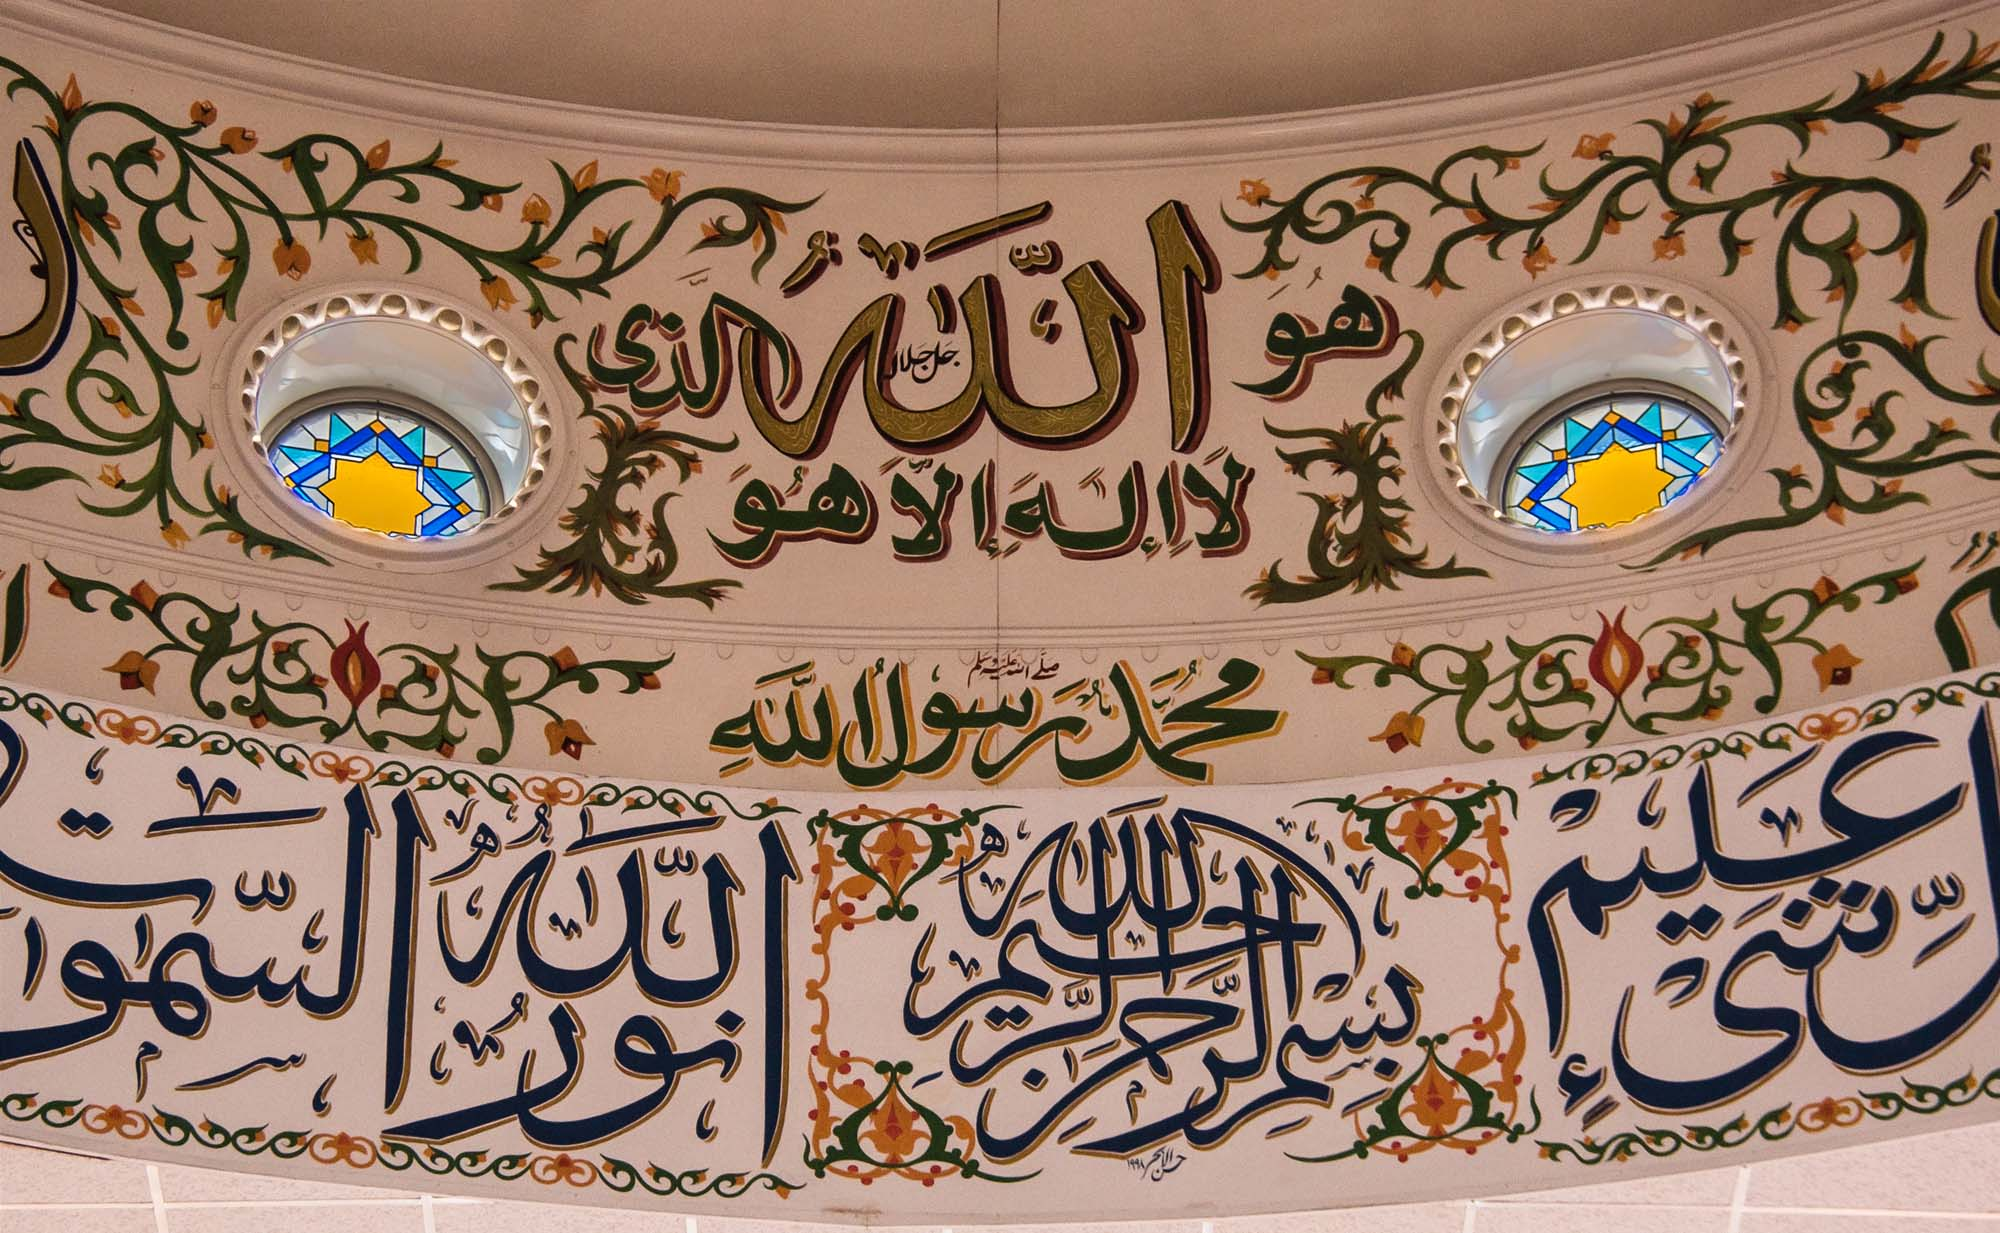 Islamic calligraphy adorns the inside of the dome -